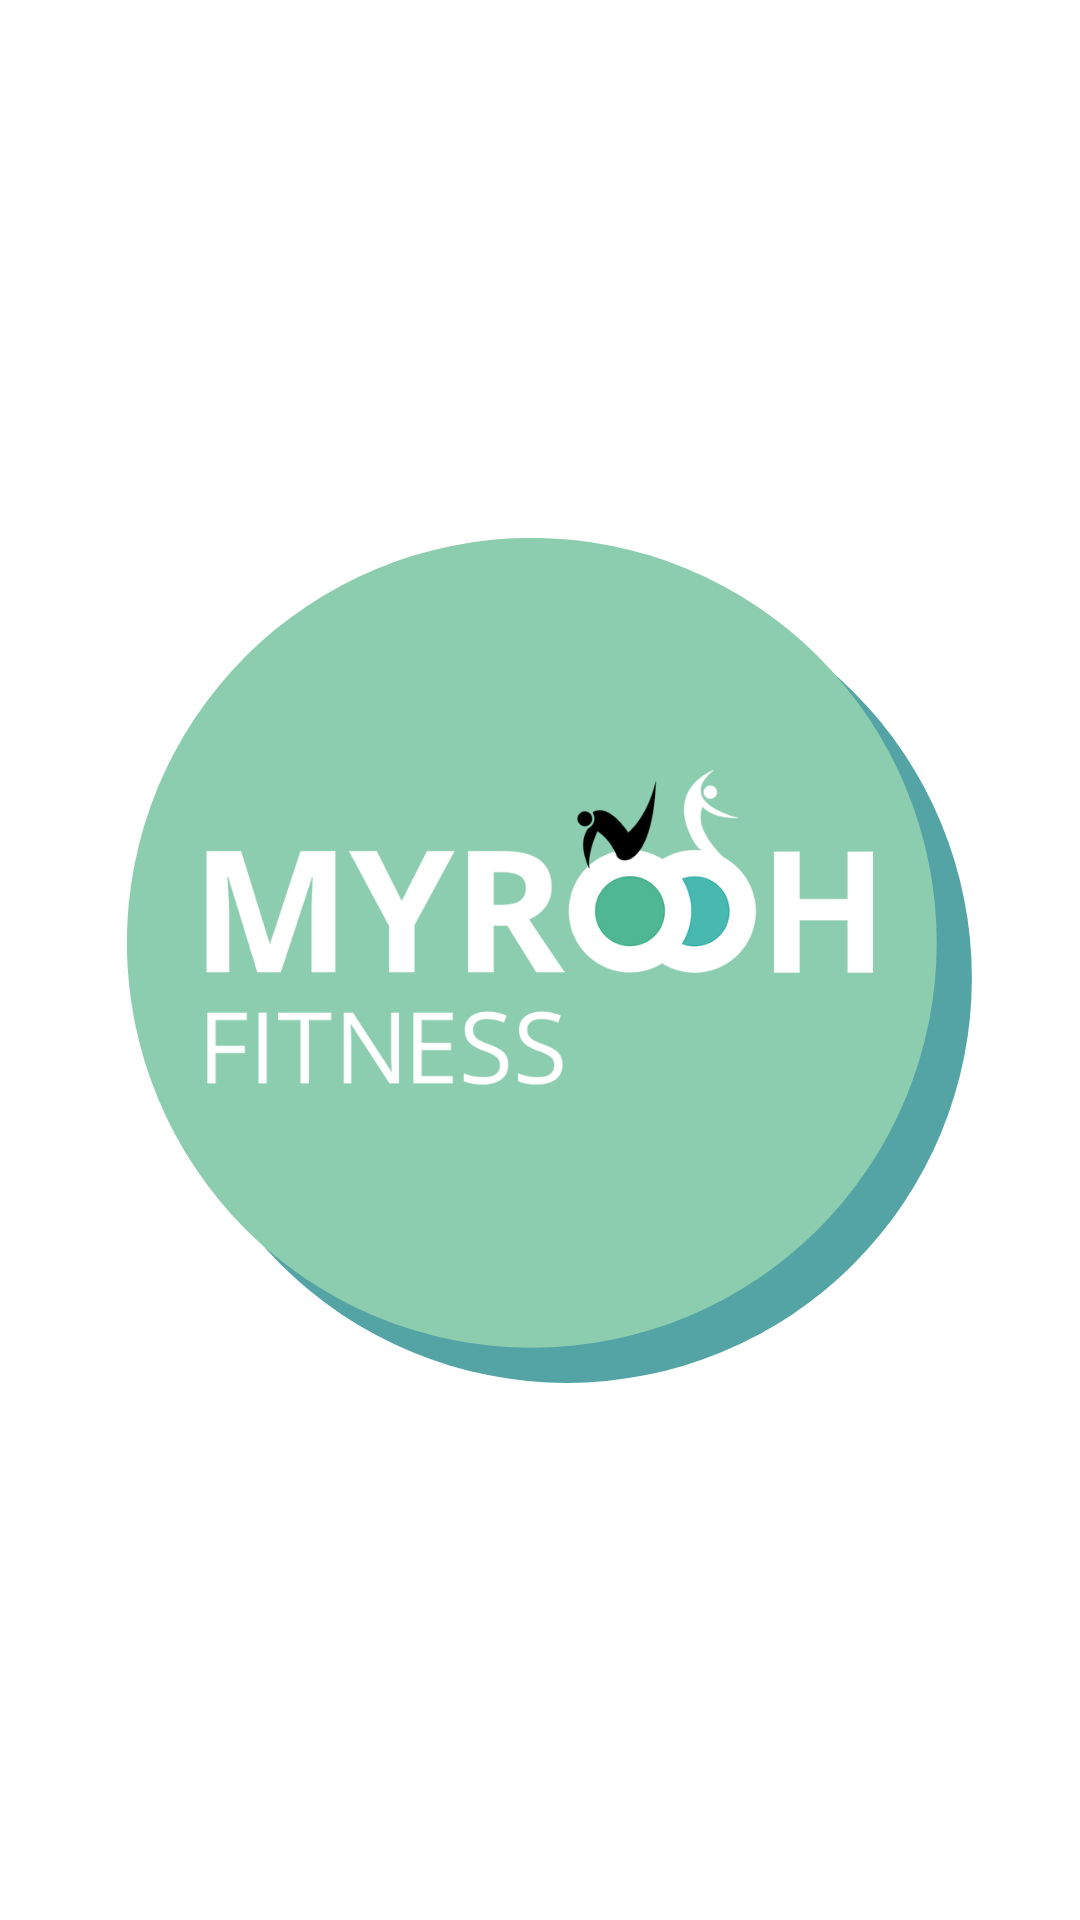 MYROOH FITNESS LTD